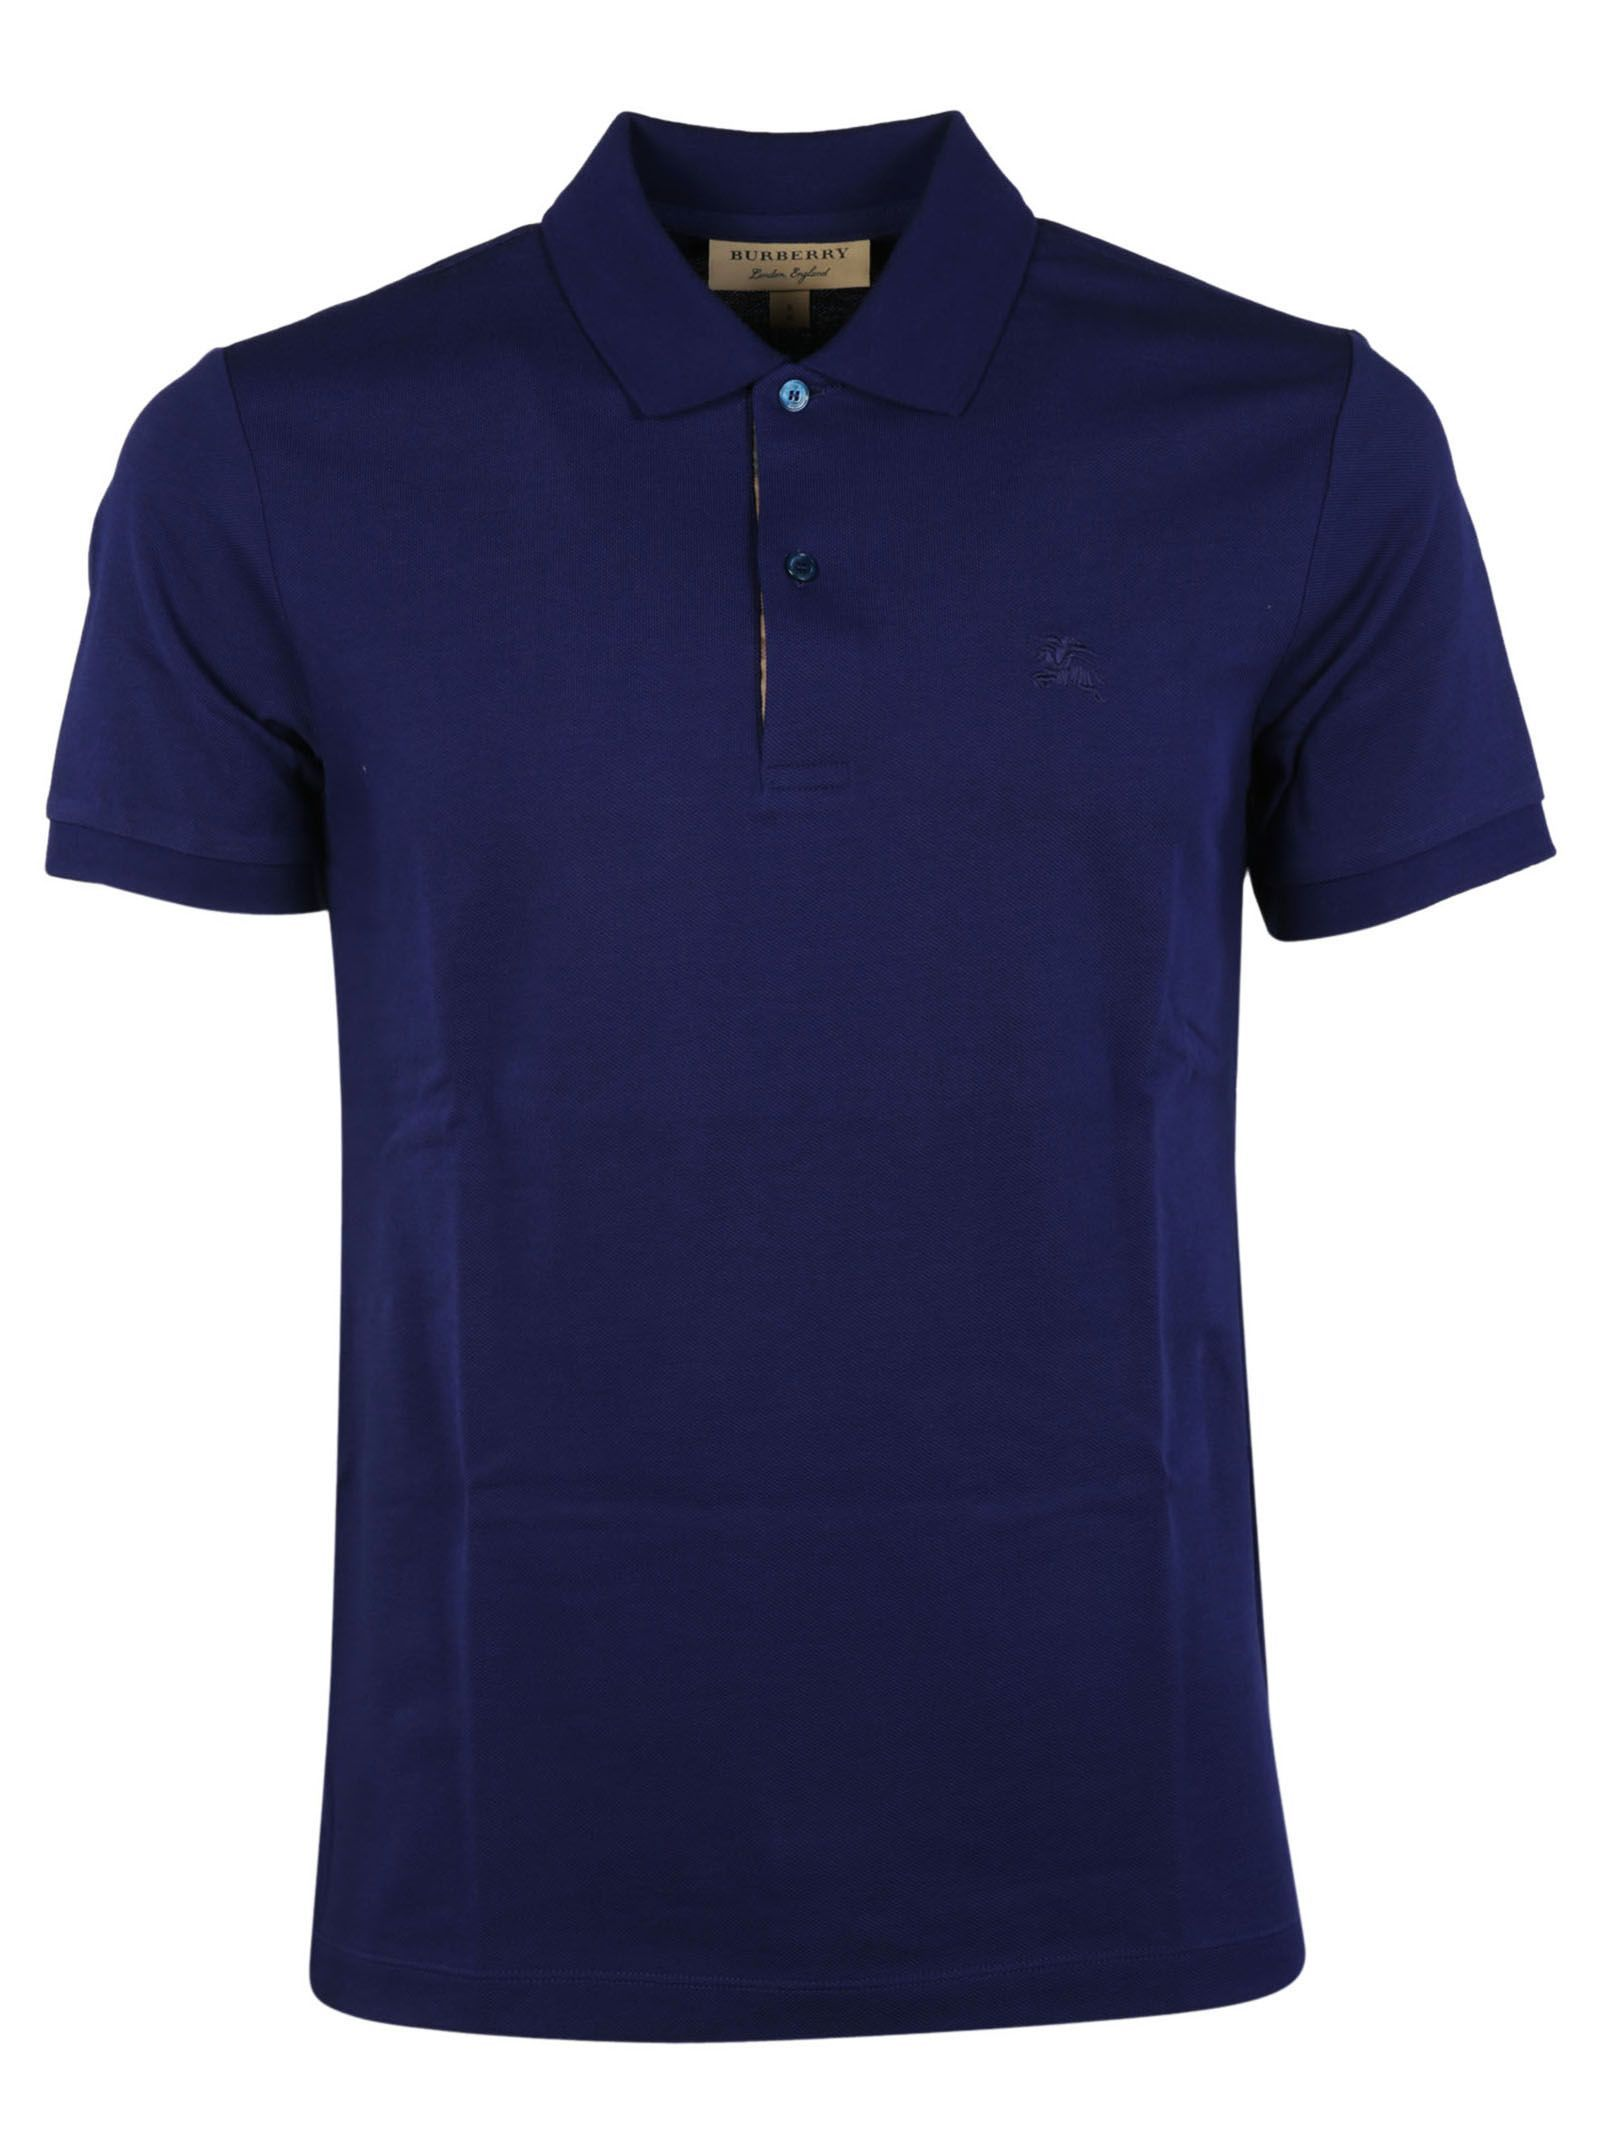 9d921d589 BURBERRY CLASSIC POLO SHIRT.  burberry  cloth